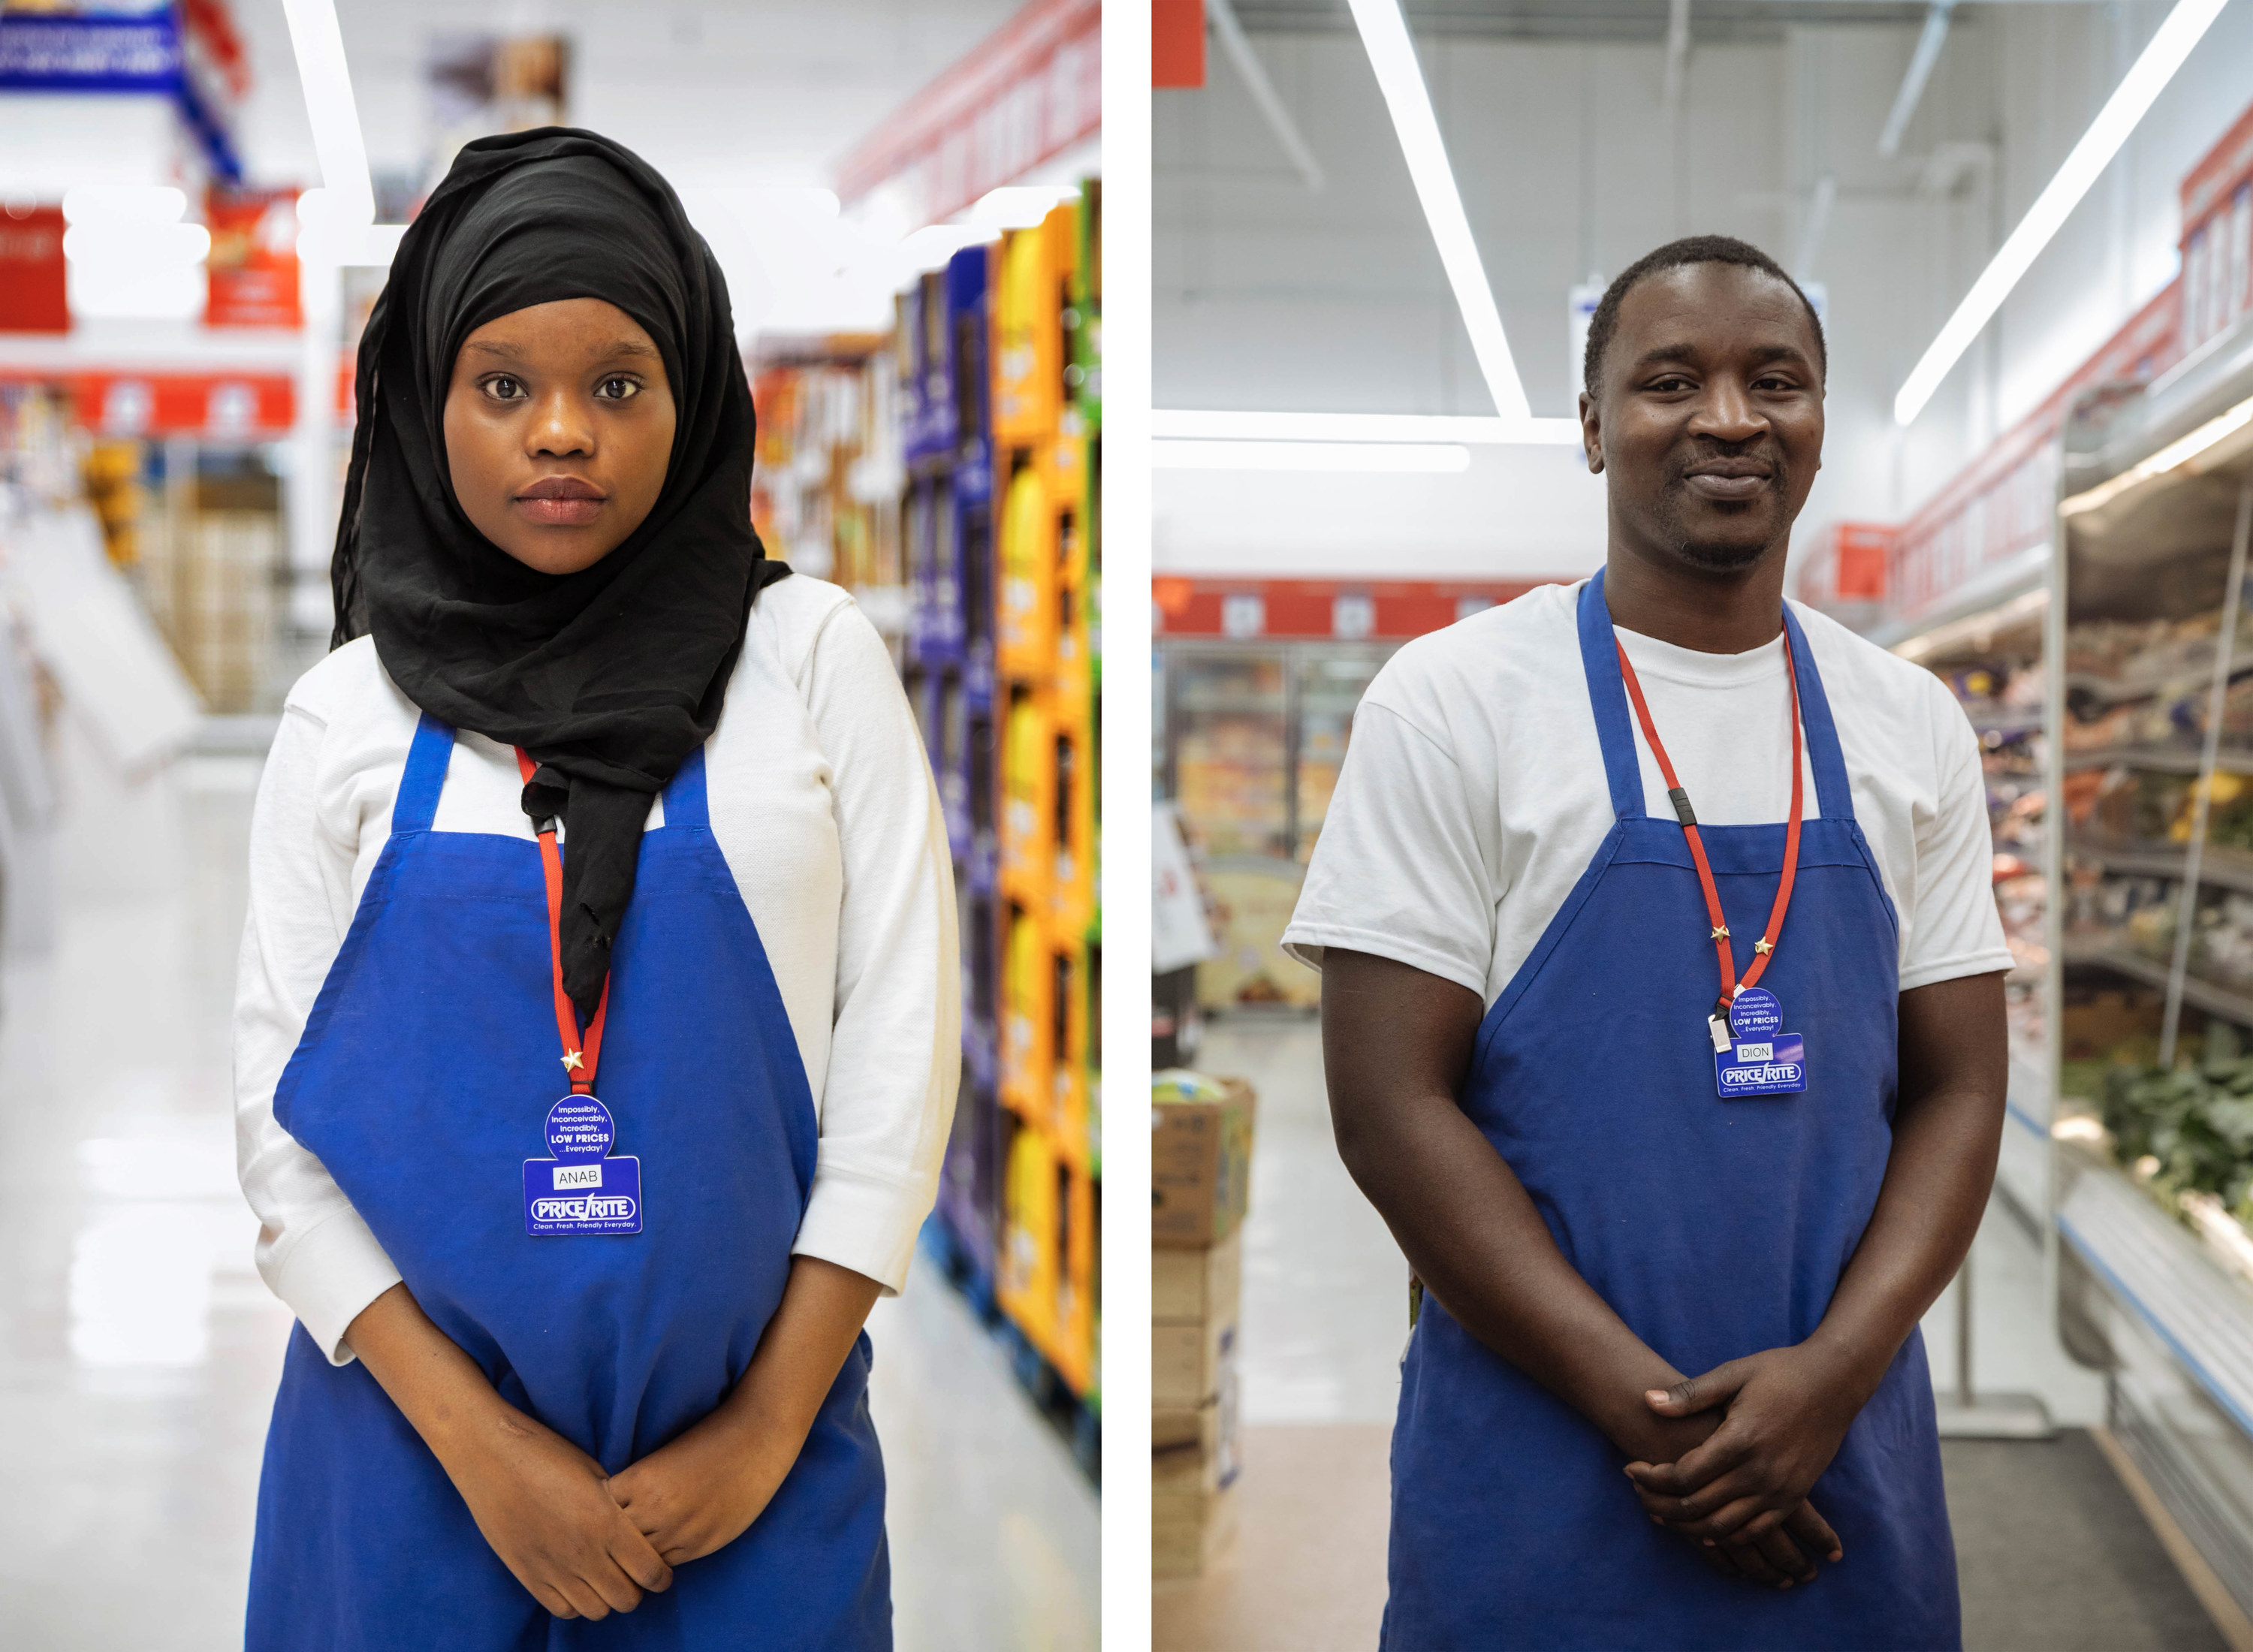 A split image of a woman in a hijab in a Price Rite apron, and a man on the right in a Price Rite apron